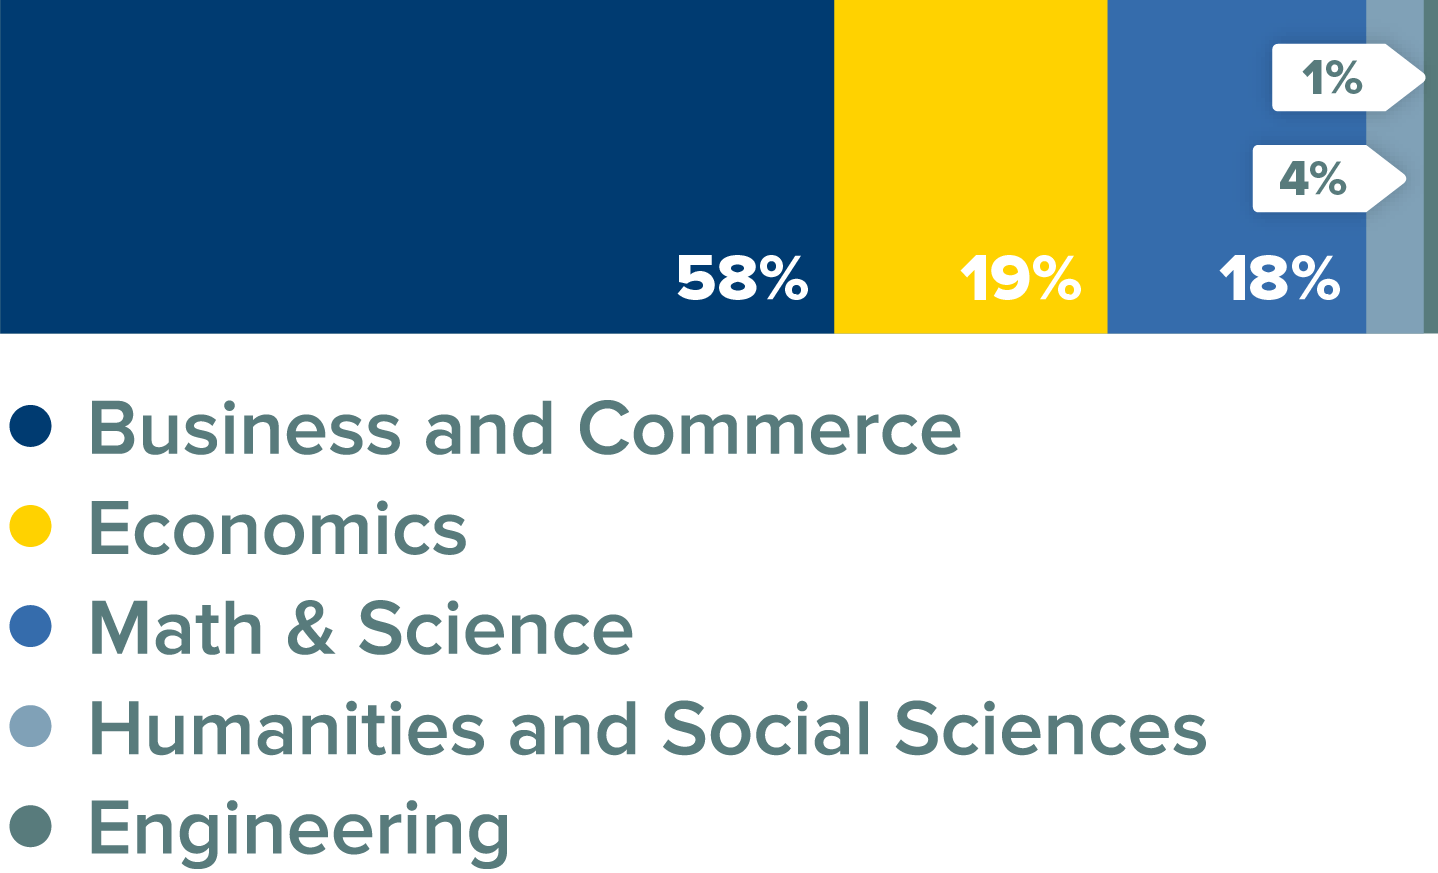 MSBA Class Percentage by Major Bar Graph. 58% business and commerce; 19% economics; 18% math and science; 4% humanities and social sciences; 1% engineering.